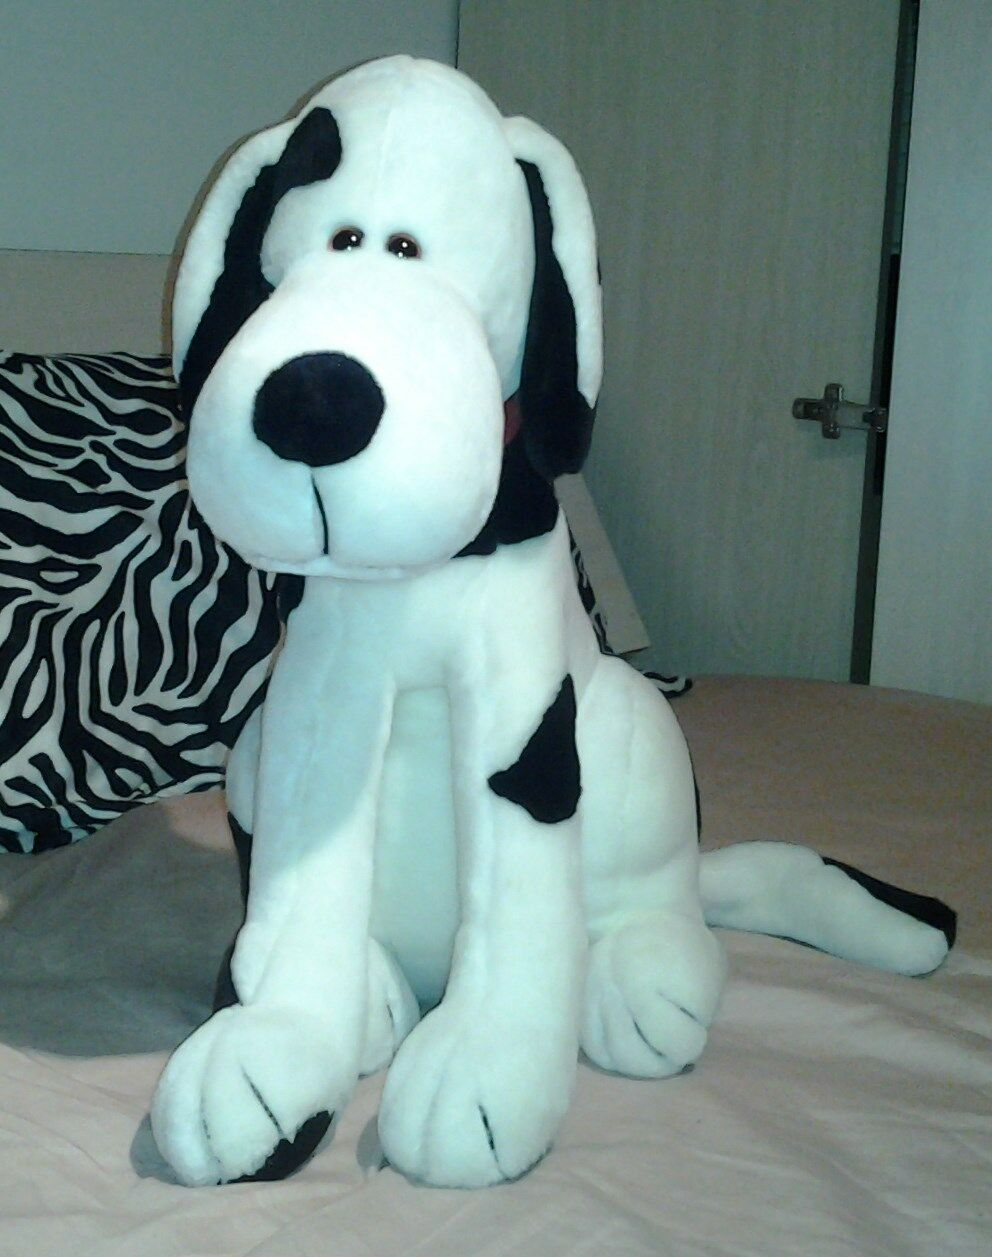 Rare 1997 Dalmation Puppy Dog Spot Plush Creations 18 x 21